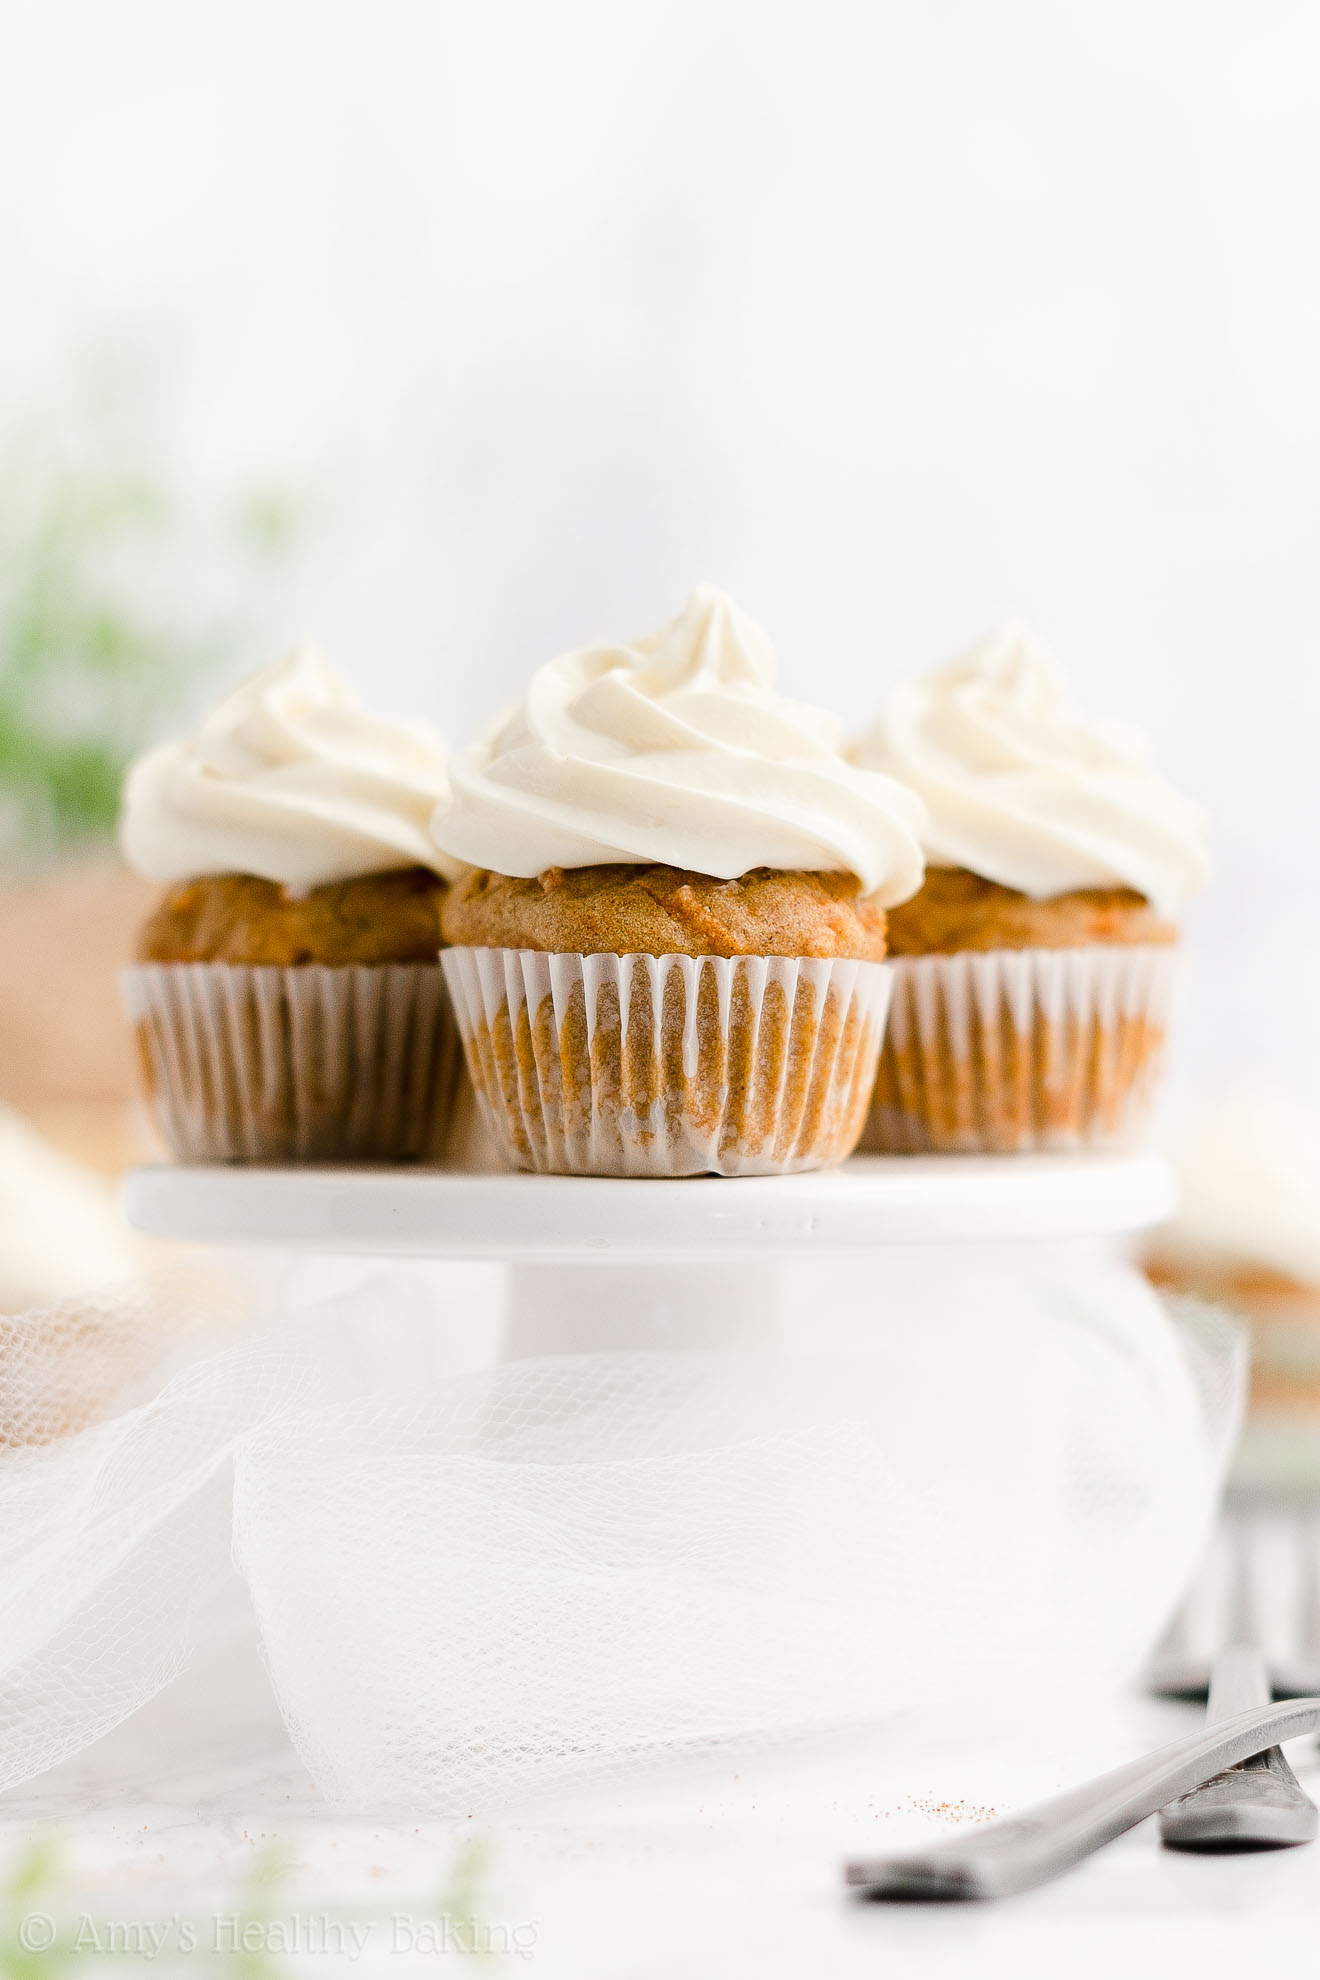 ULTIMATE Healthy Sugar Free Mini Carrot Cake Cupcakes No Raisins No Oil